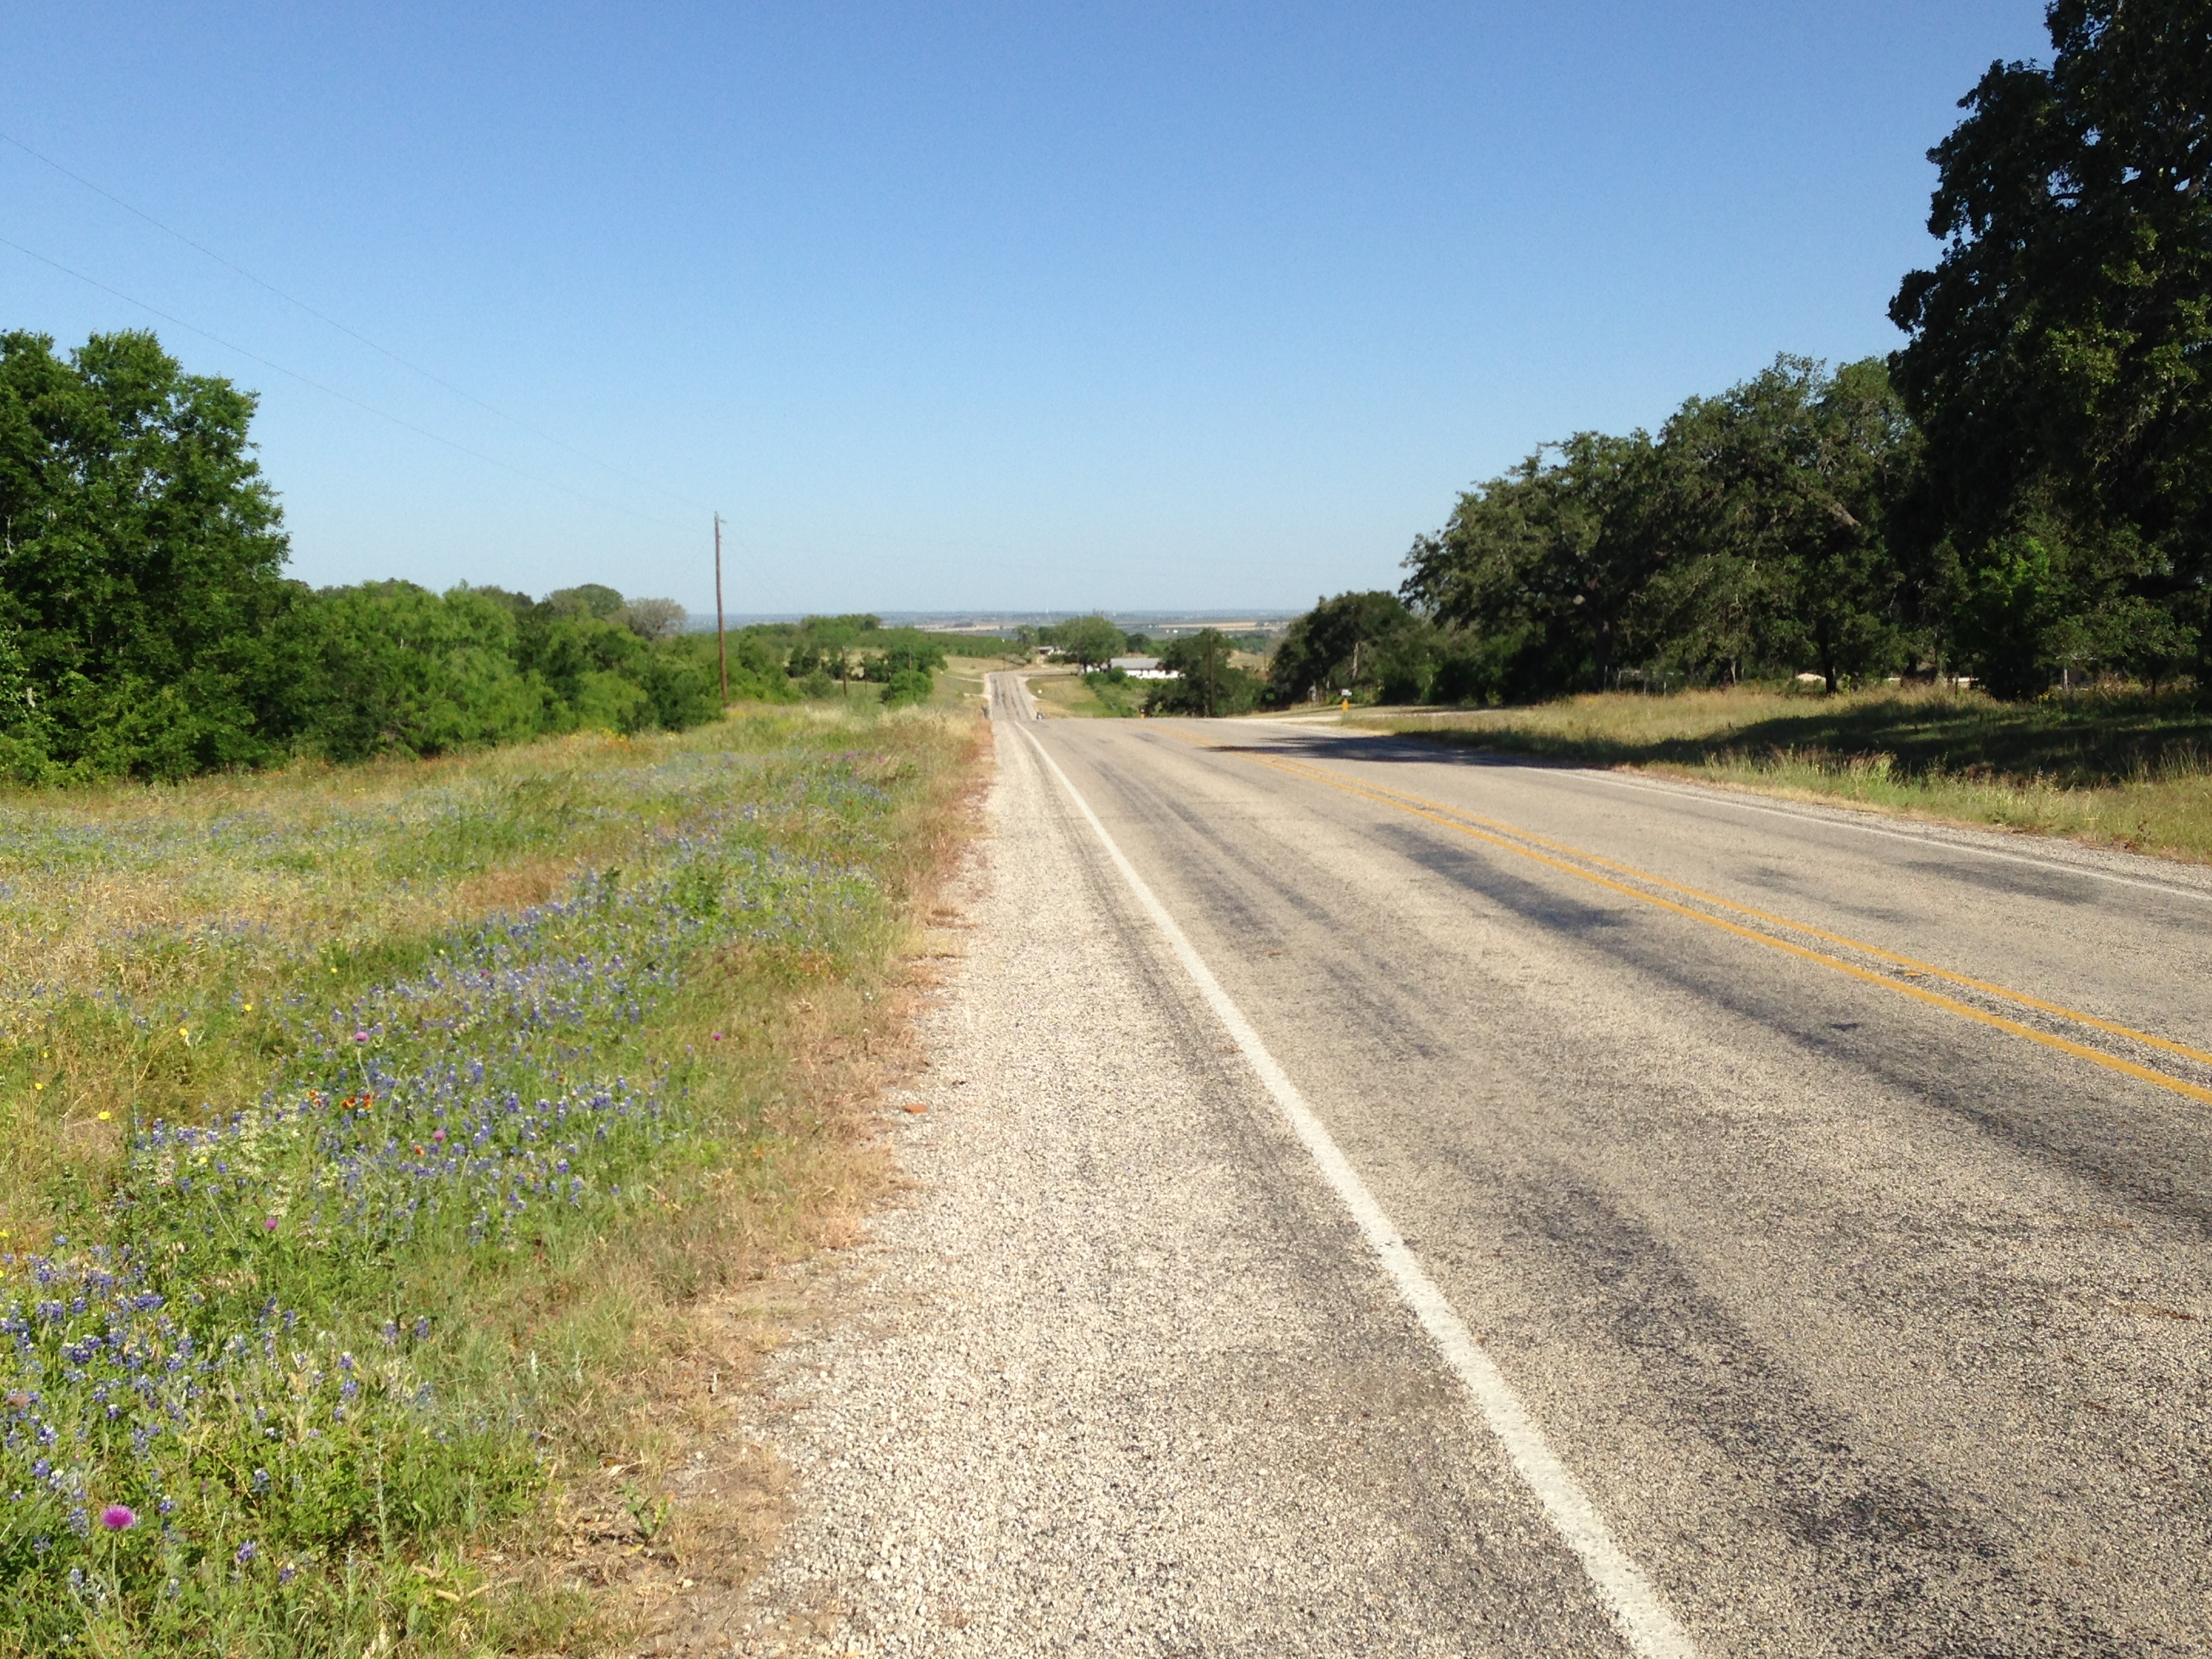 The road to Kingsbury, looking north. Some bluebonnets are still hanging on in roadside ditches. (Click all pix to embiggen.)